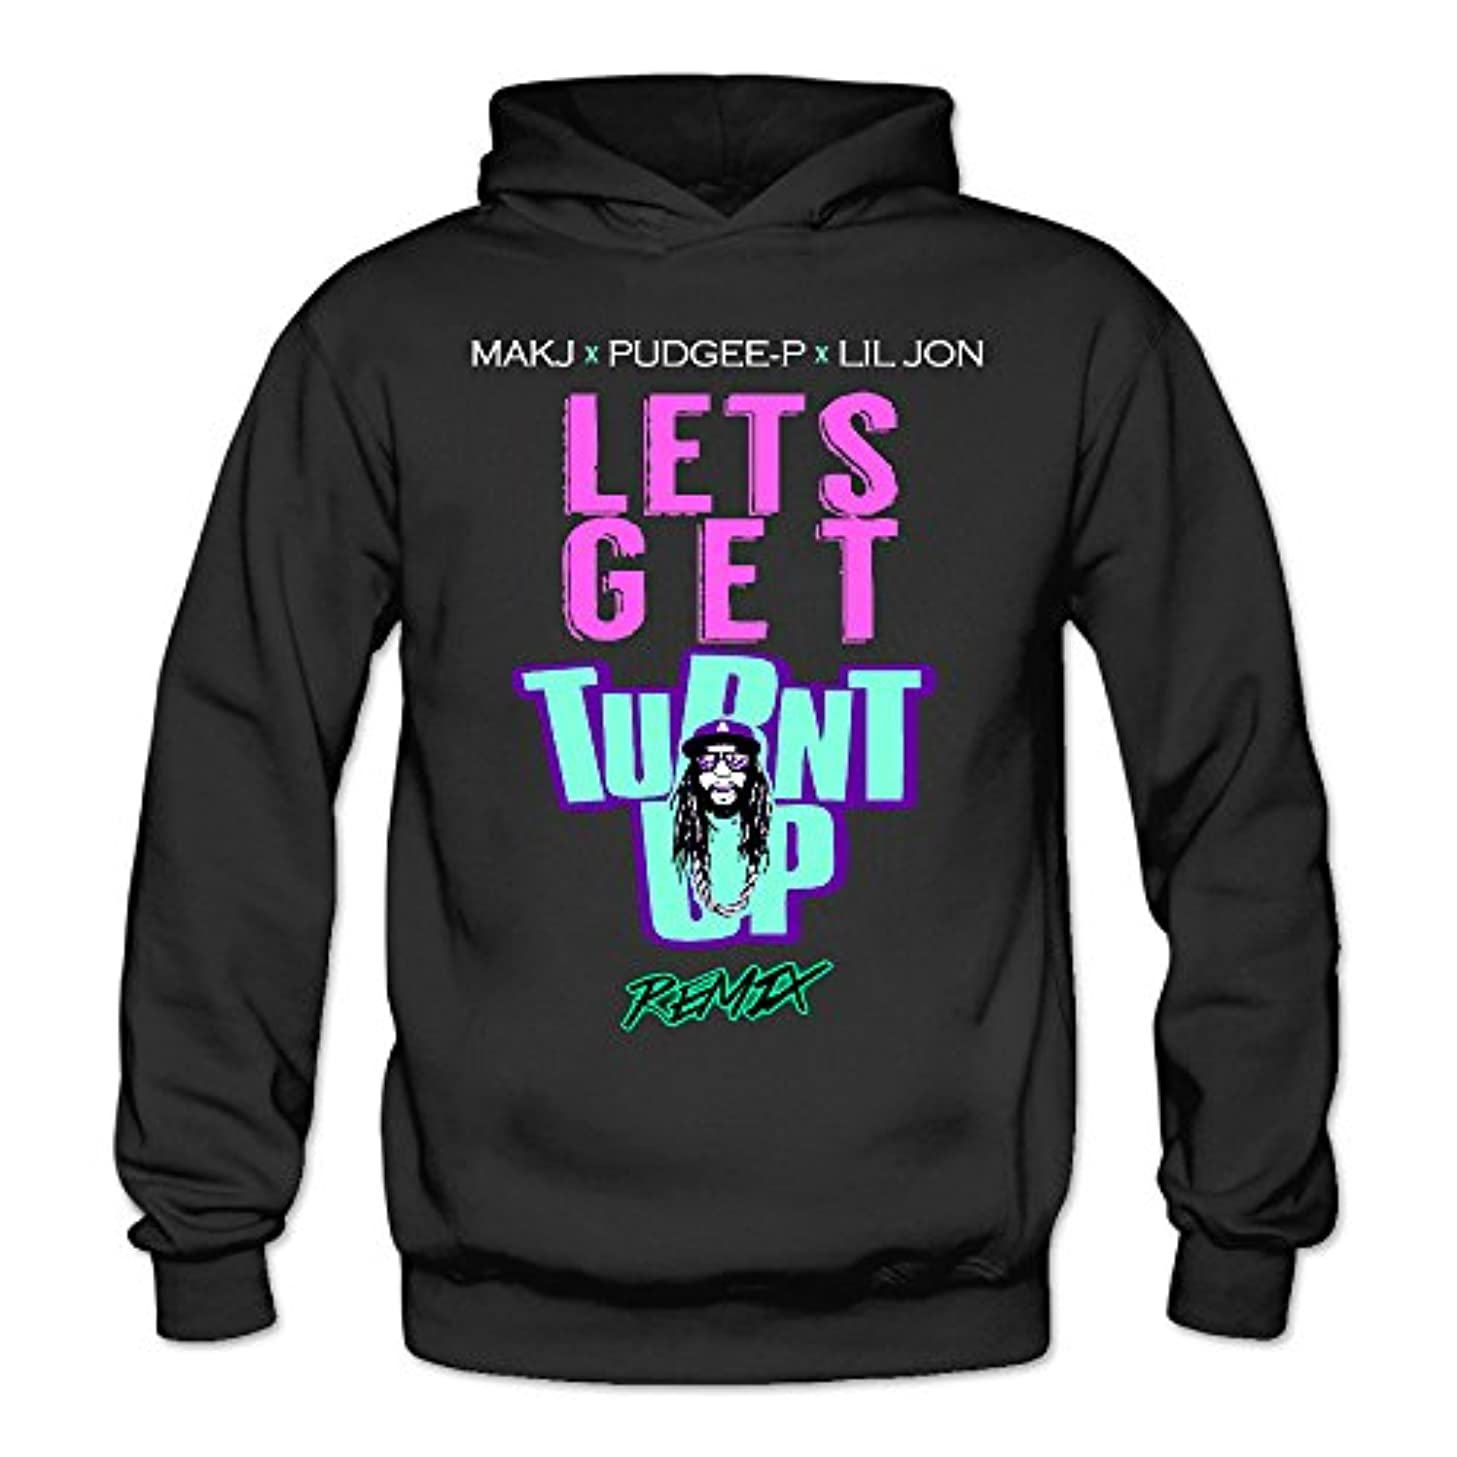 Womens Lil Jon - Lets Get Turnt Up FashionHoodies Sweatshirt Lightweight